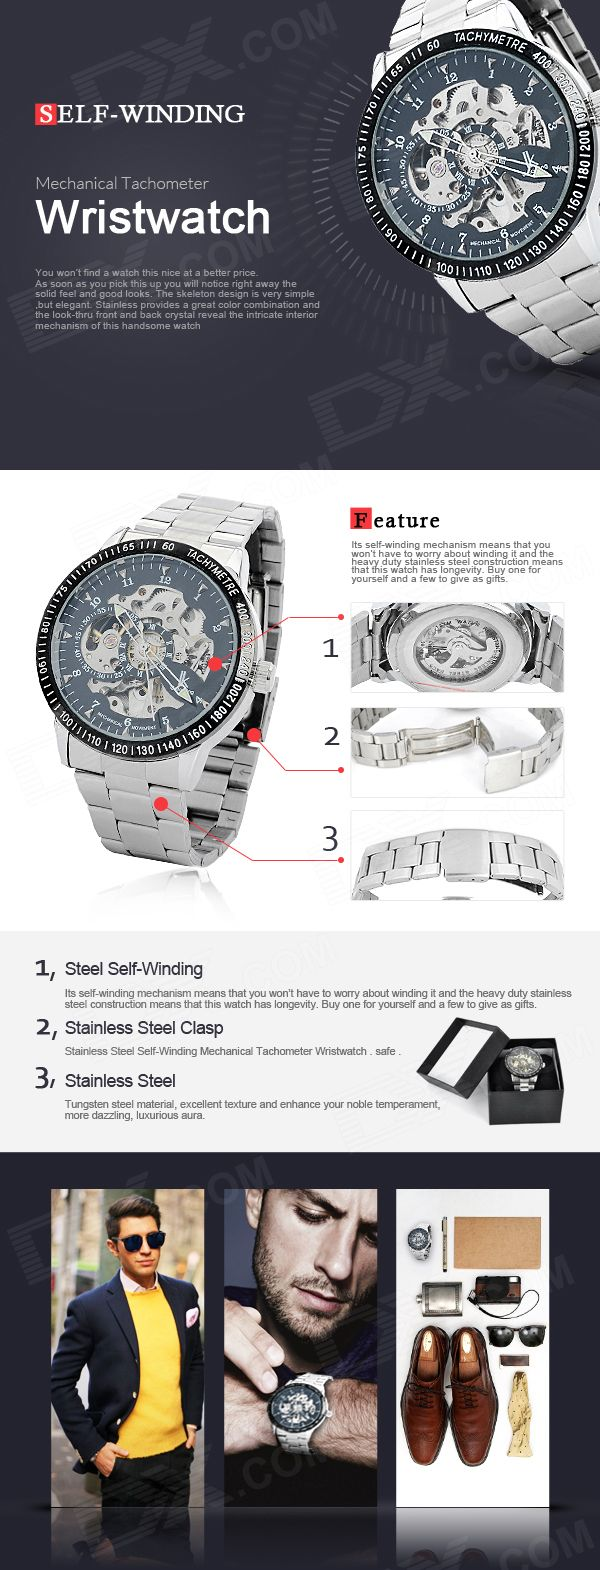 Stainless Steel Self-Winding Mechanical Tachymeter Wristwatch - Free Shipping - DealExtreme